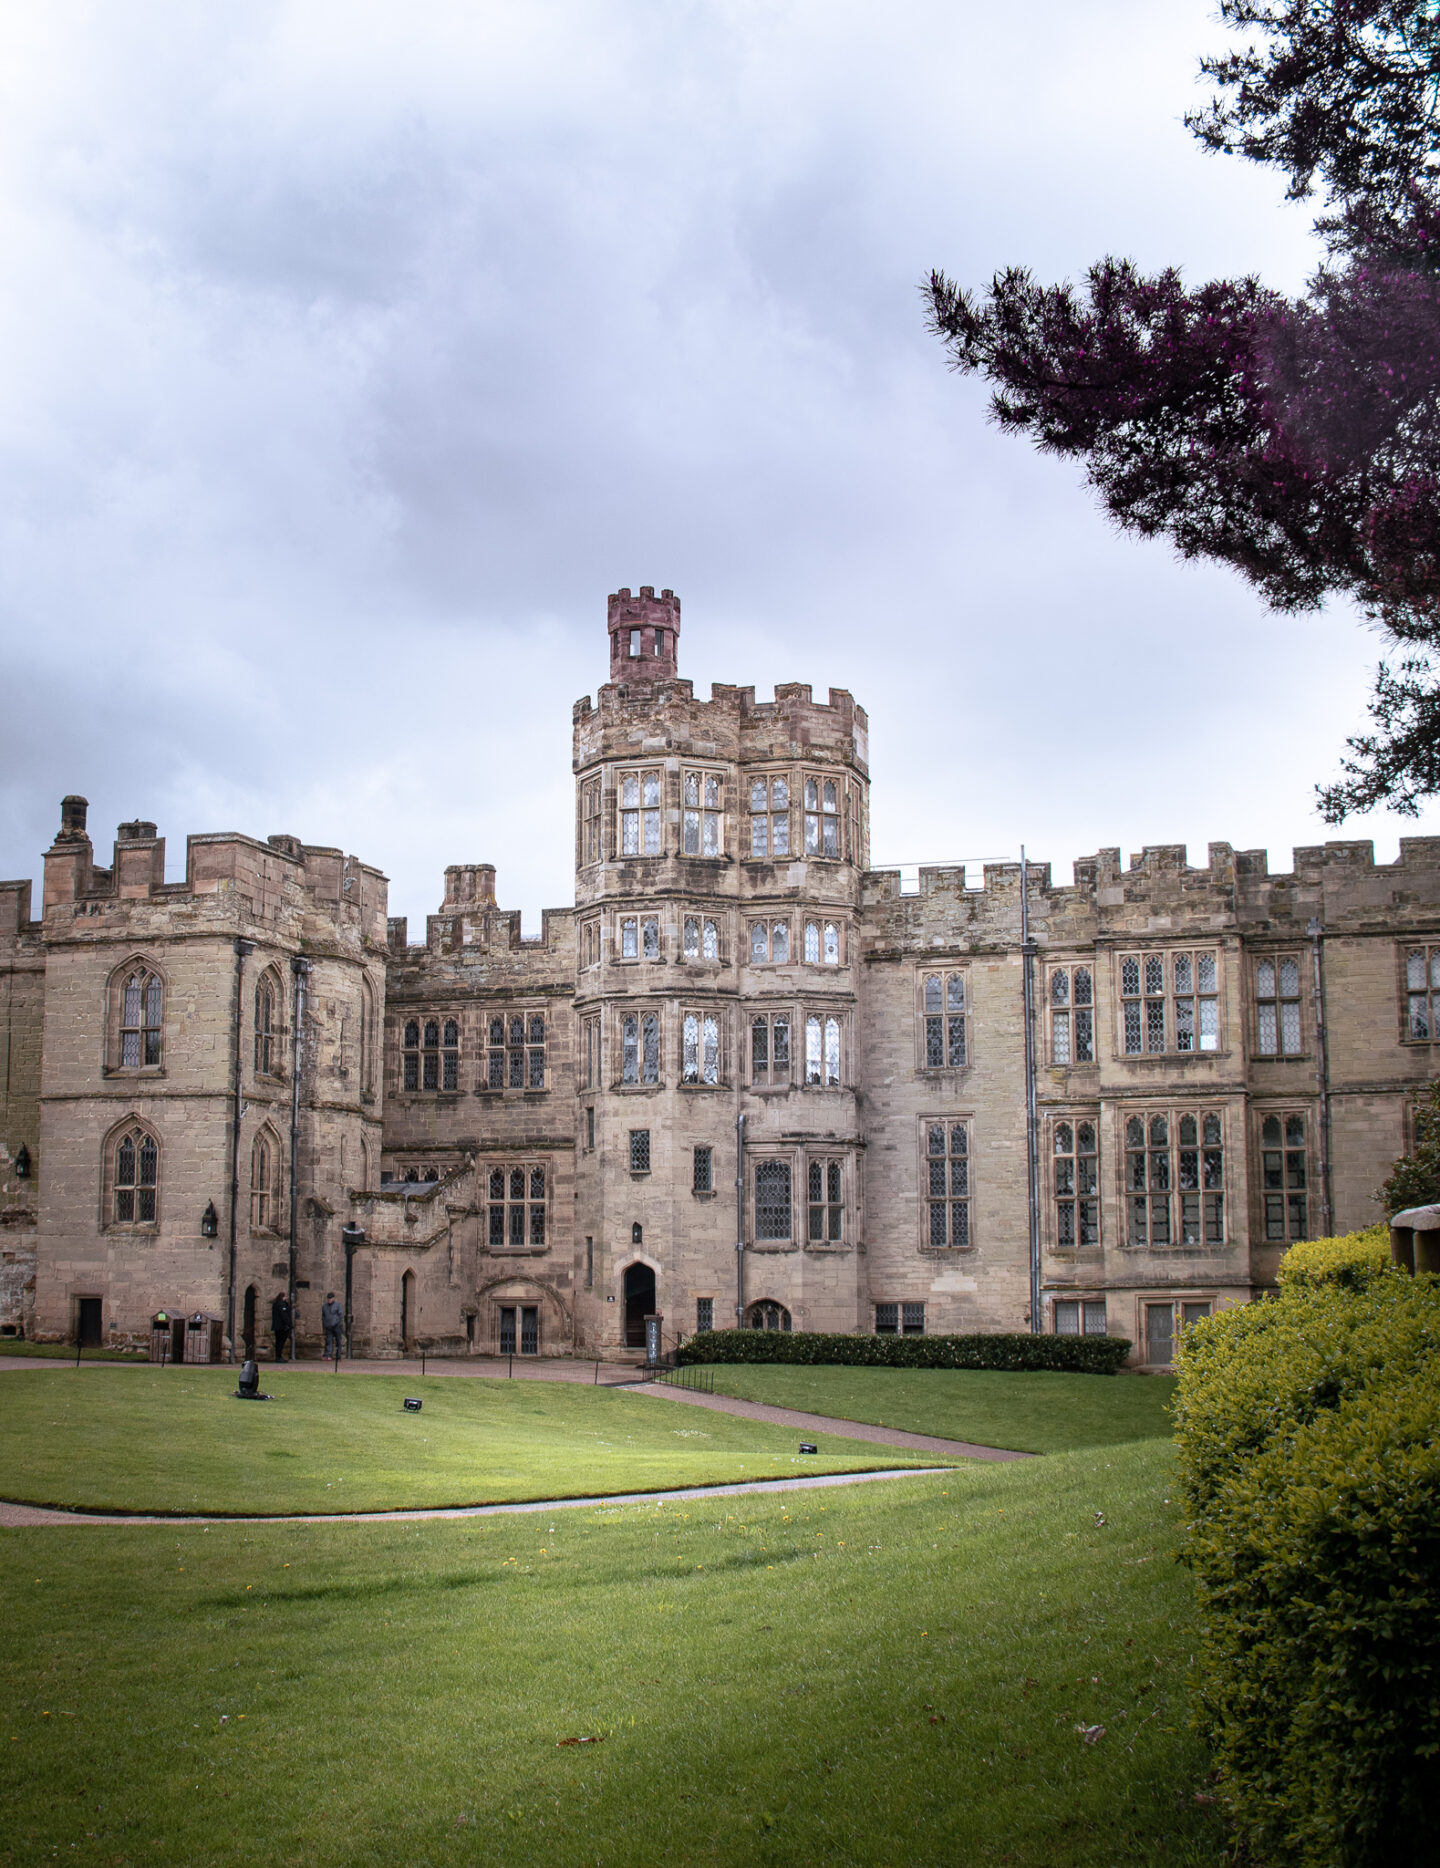 A view of Warwick Castle